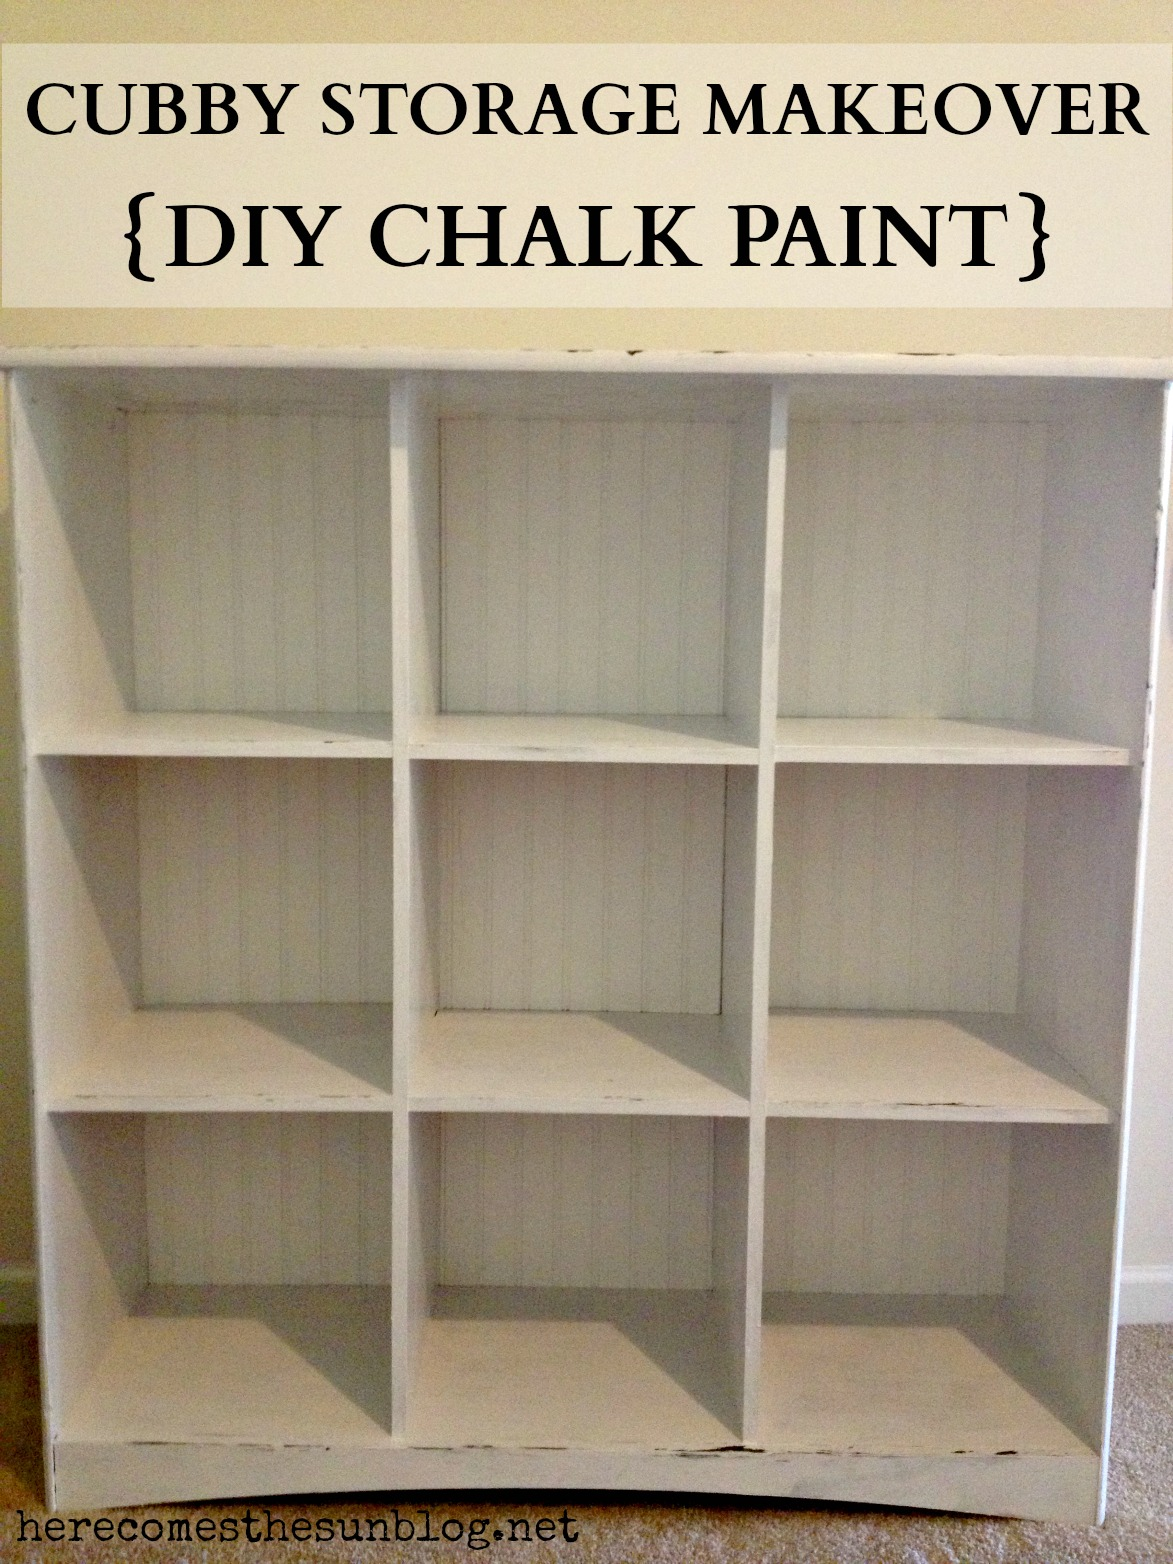 Cubby Storage Makeover {DIY Chalk Paint} - Here Comes The Sun